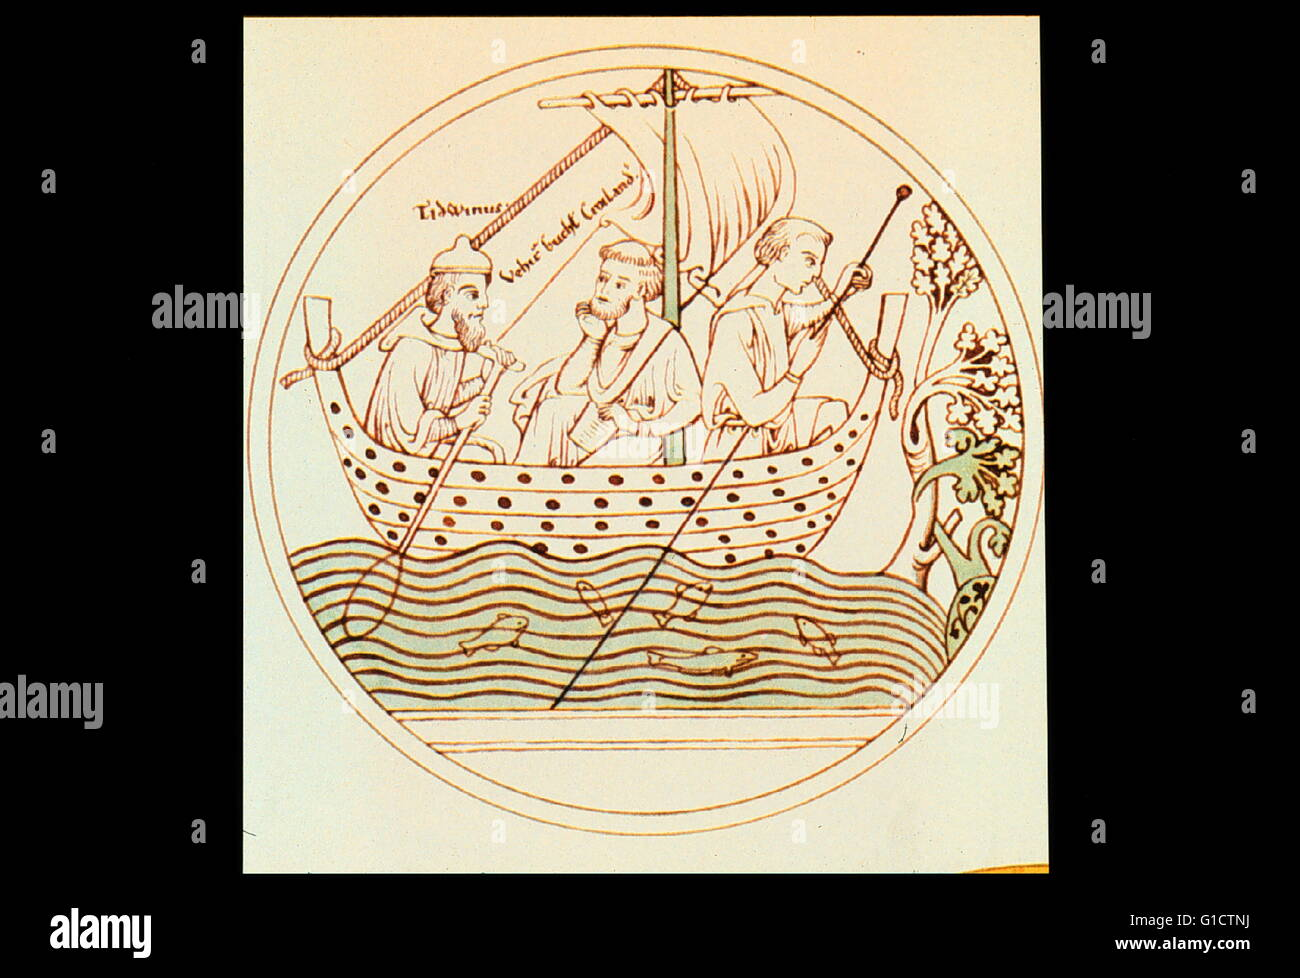 St. Brendan striking out into the Atlantic - about 6th Century A.D. St. Brendan checking depths with his sounding - Stock Image